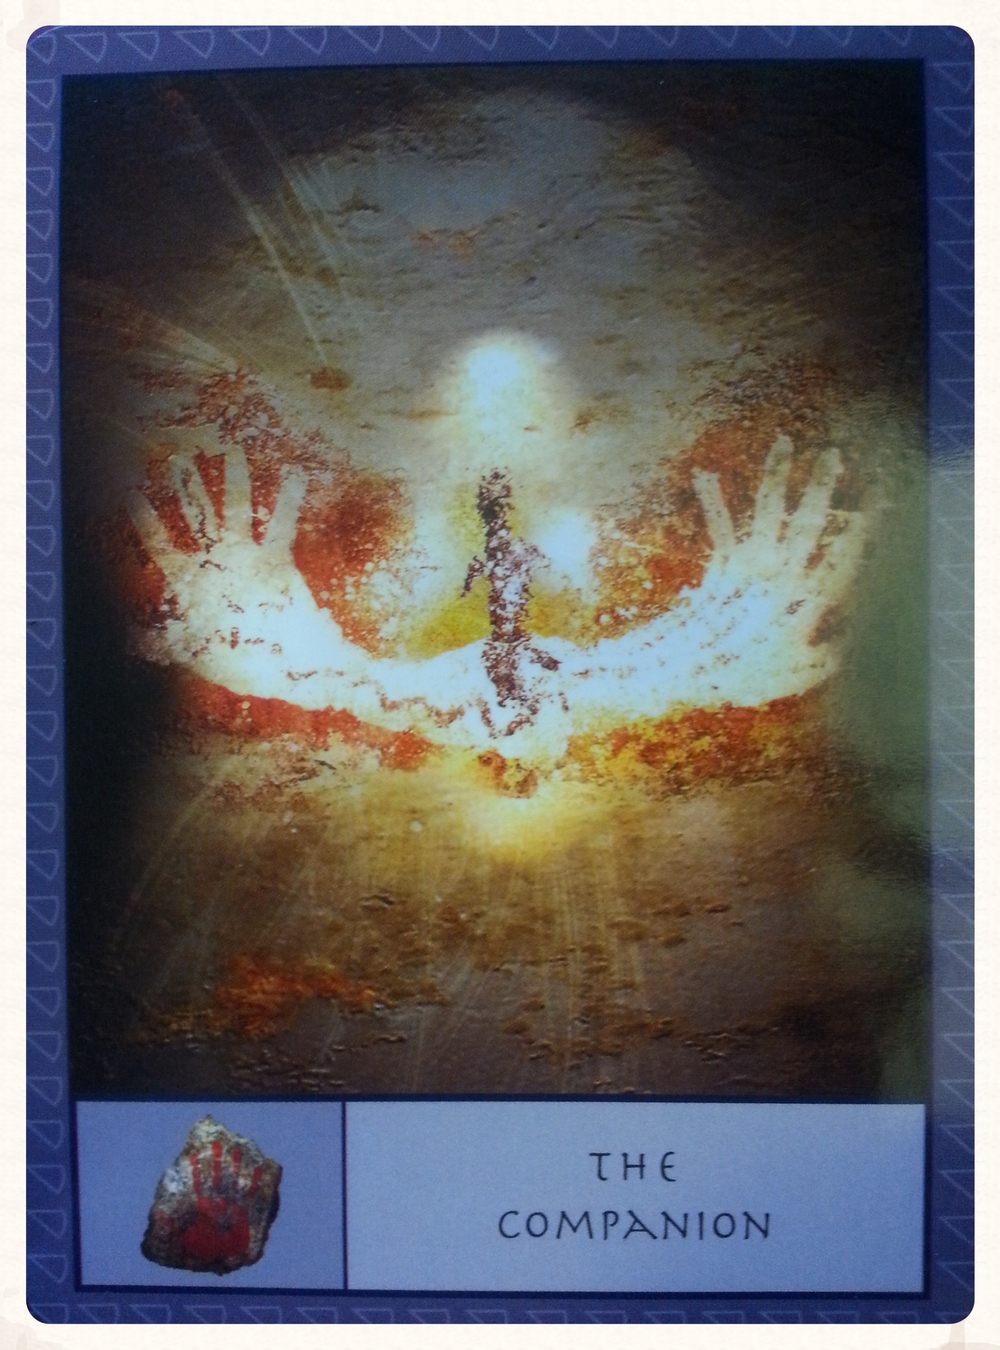 """""""THE COMPANION CARD ACTS AS A THE SEEKER'S SUPPORTIVE INNER GUIDE. IT'S ASSOCIATED IMAGE IS A HANDPRINT, SYMBOLIZING THE CONNECTION BETWEEN THE COMPANION AND THE SEEKER."""" - p. 8 from the Guidebook"""